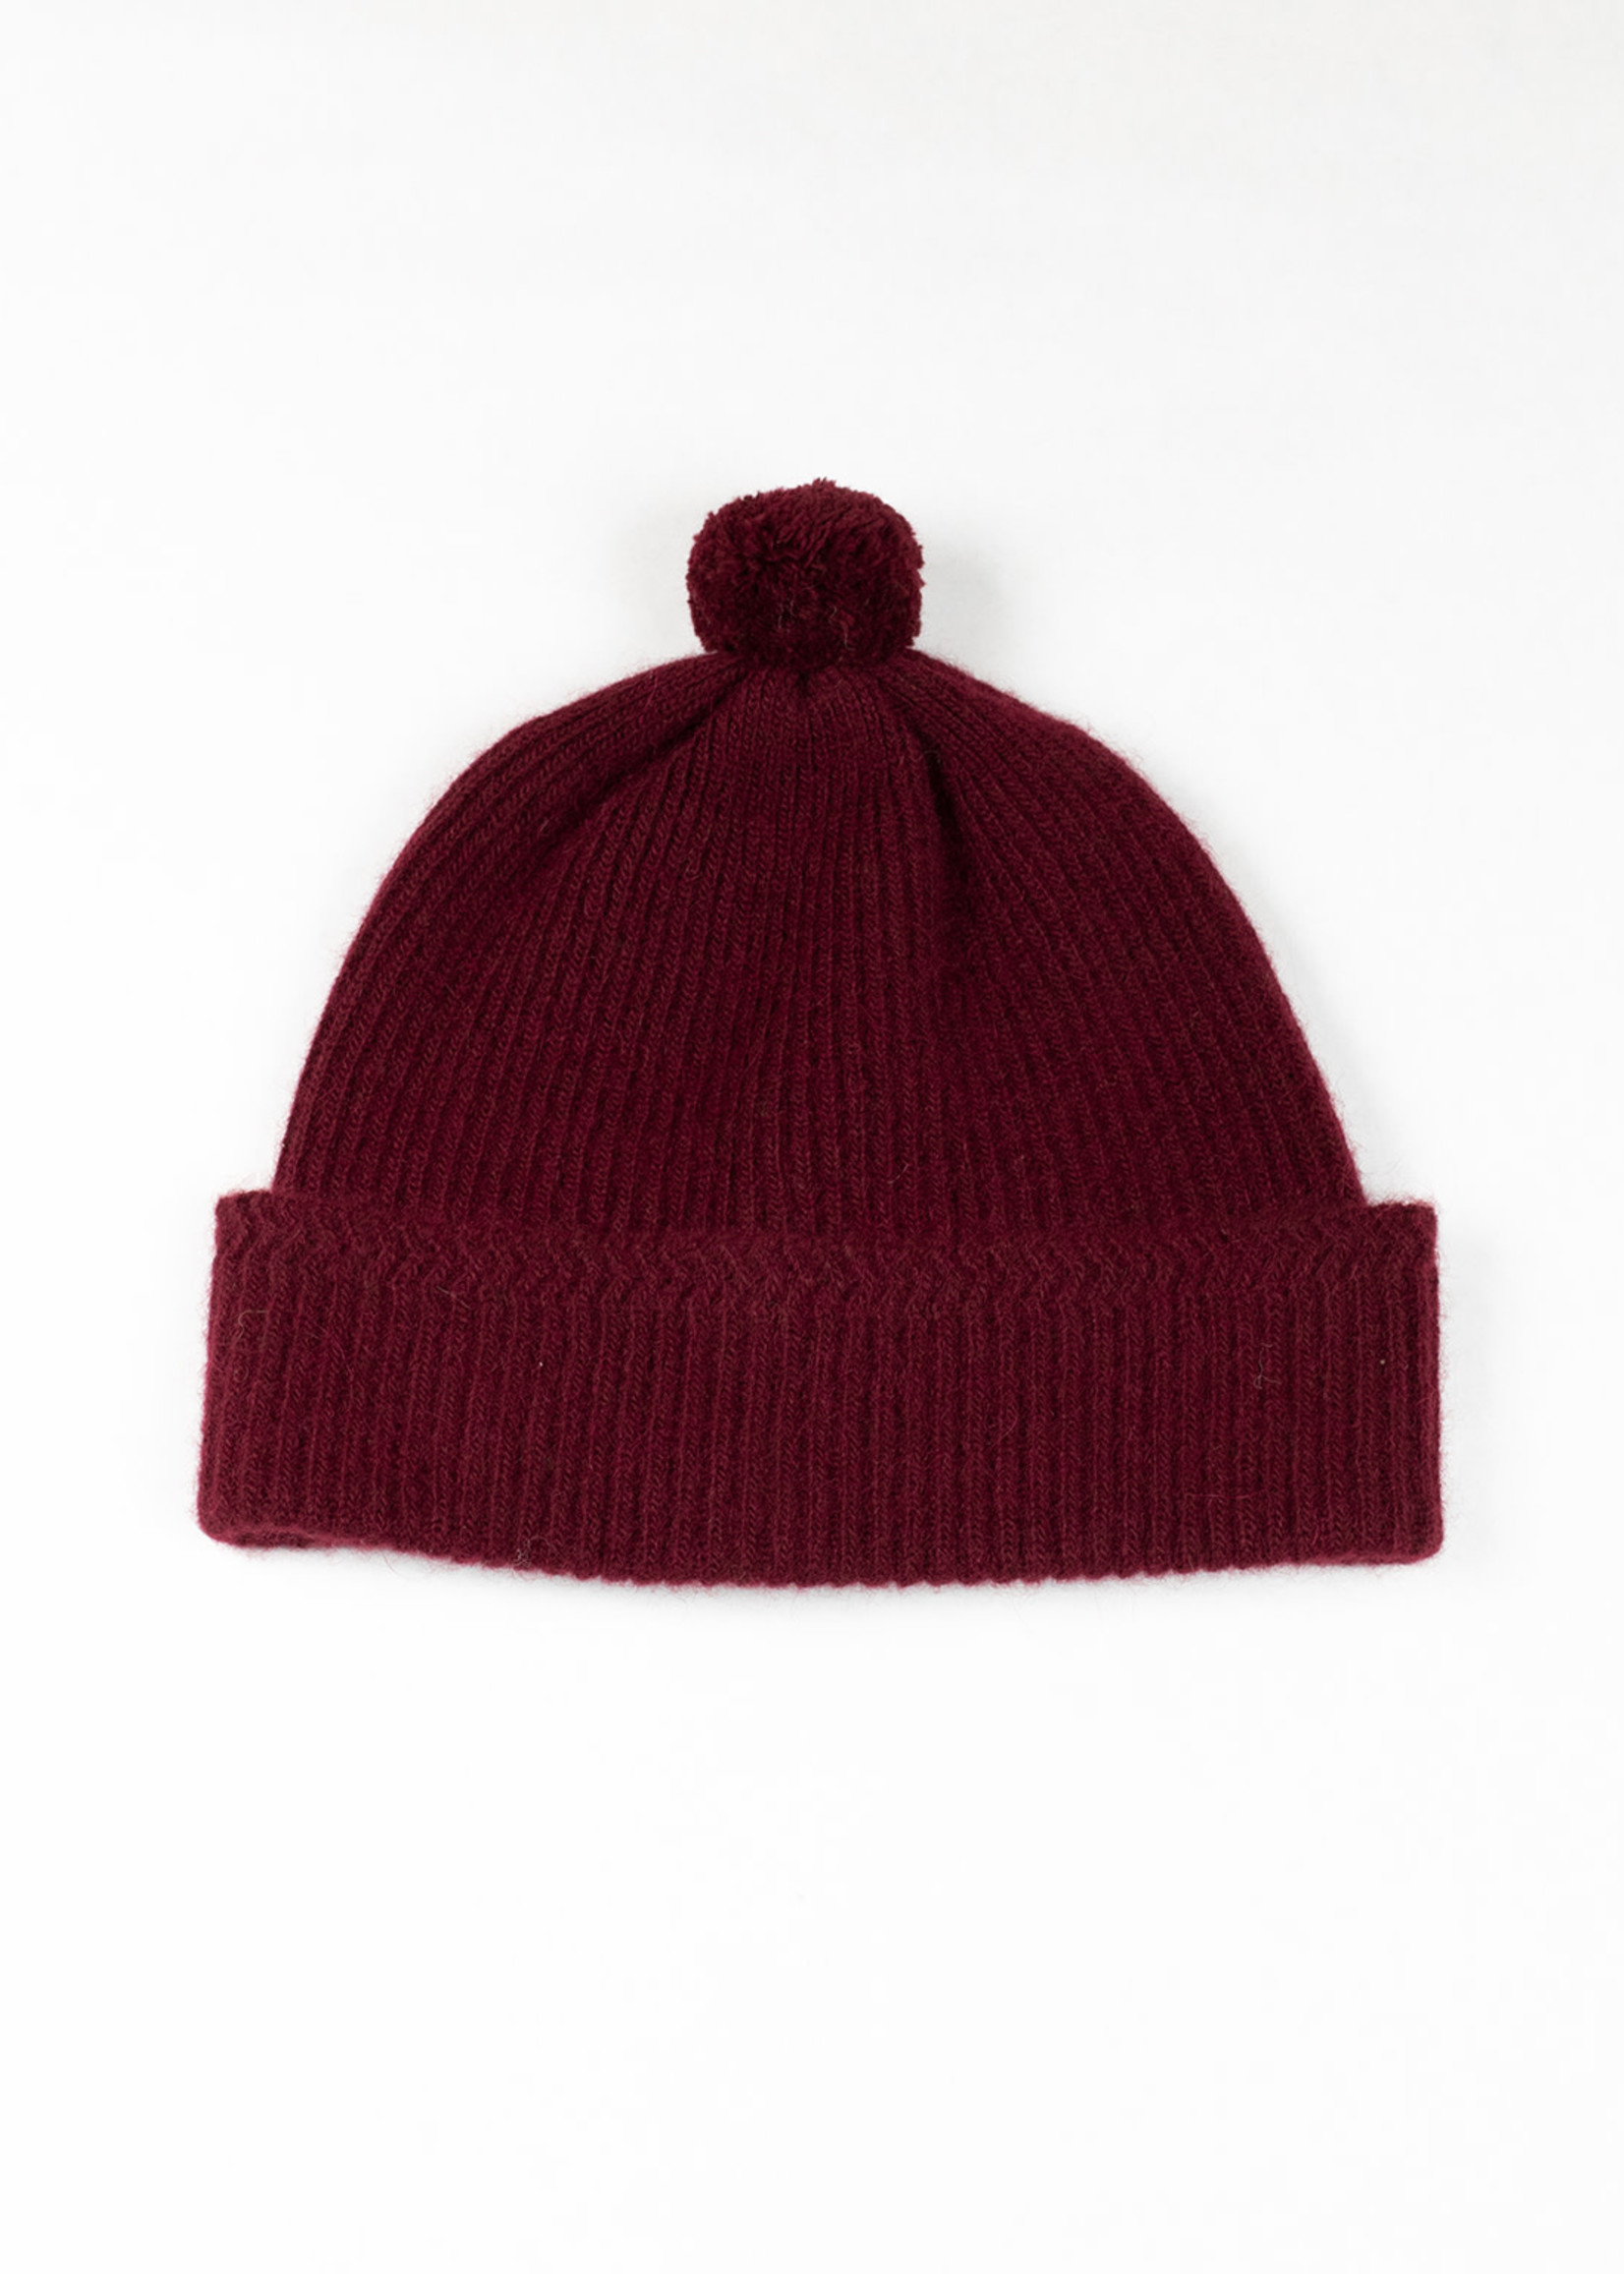 Alpaca/Wool Knit Bobble Cap Burgundy by Cableami